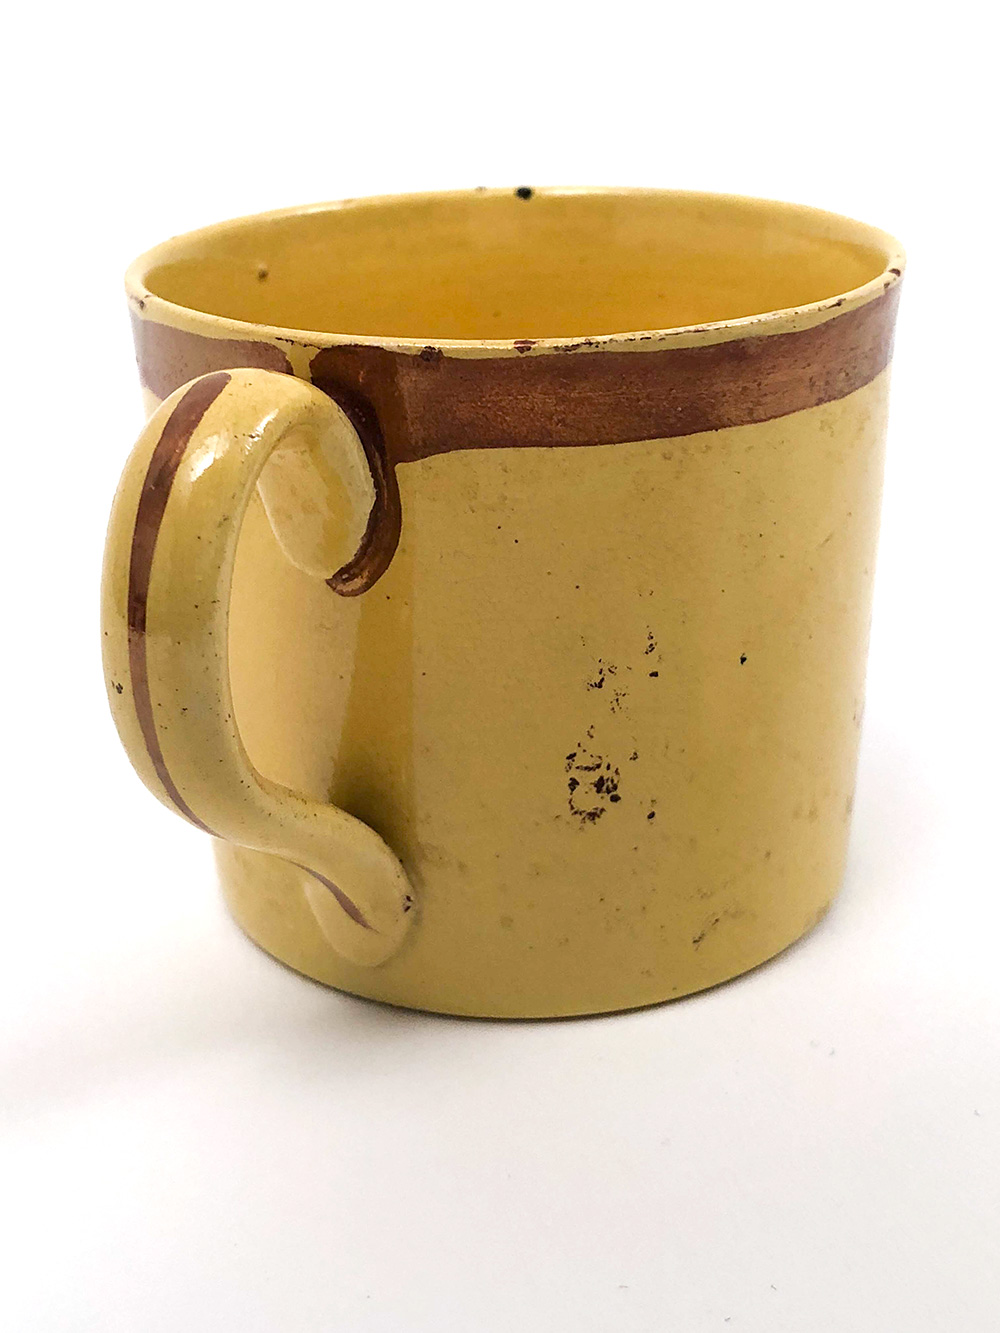 Antique yellow Motto Mug Make Hay While the Sun Shines Canary Lustreware For Sale from Z and K Antiques